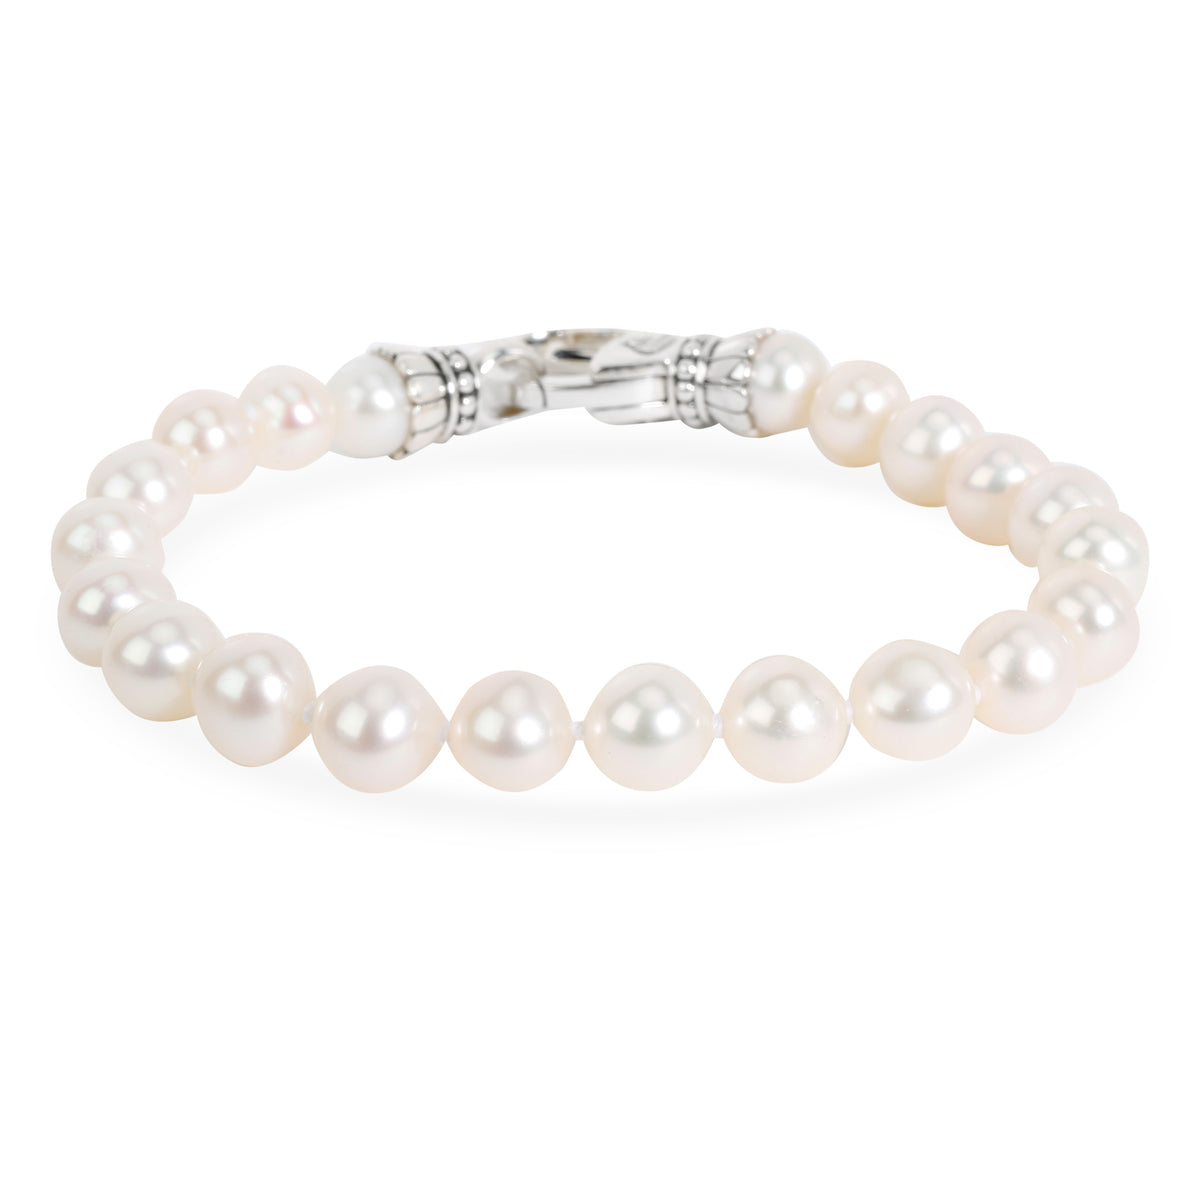 Lagos Pearl Bracelet in  Sterling Silver 7.5mm